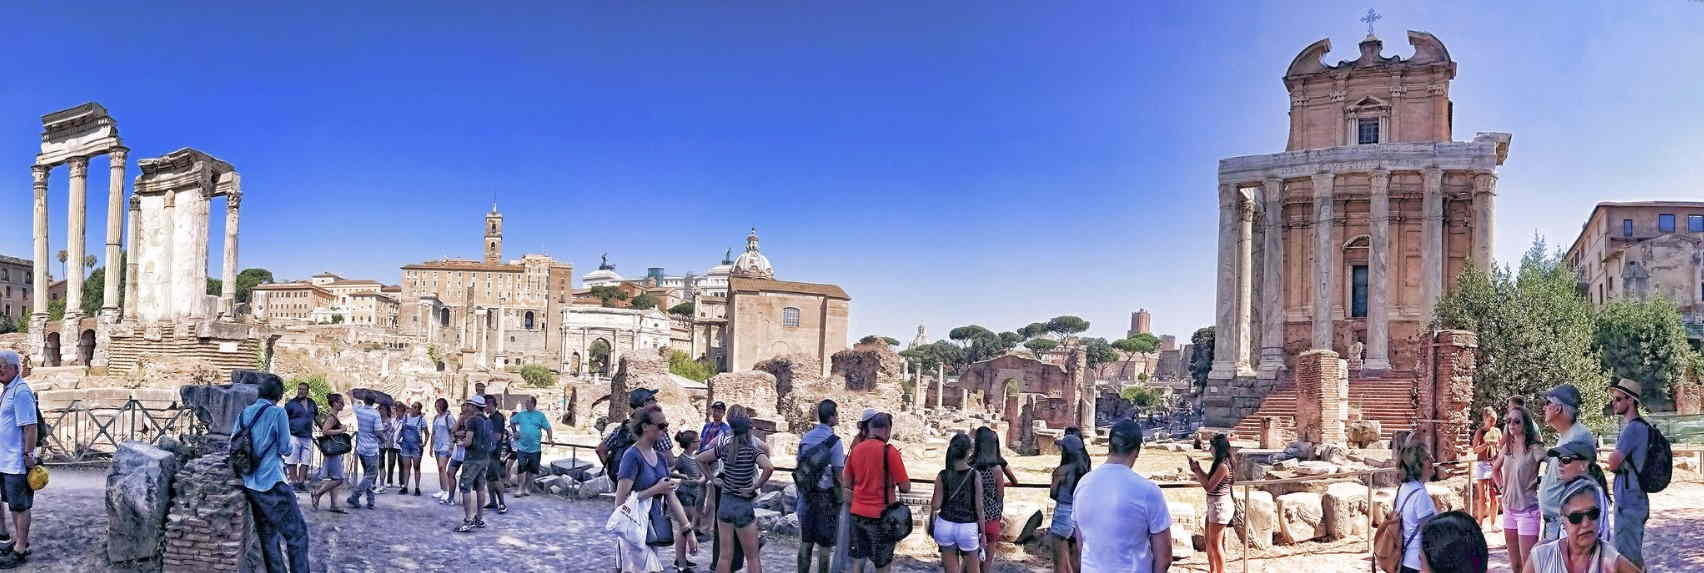 Virtual Tour of Rome and the Colosseum